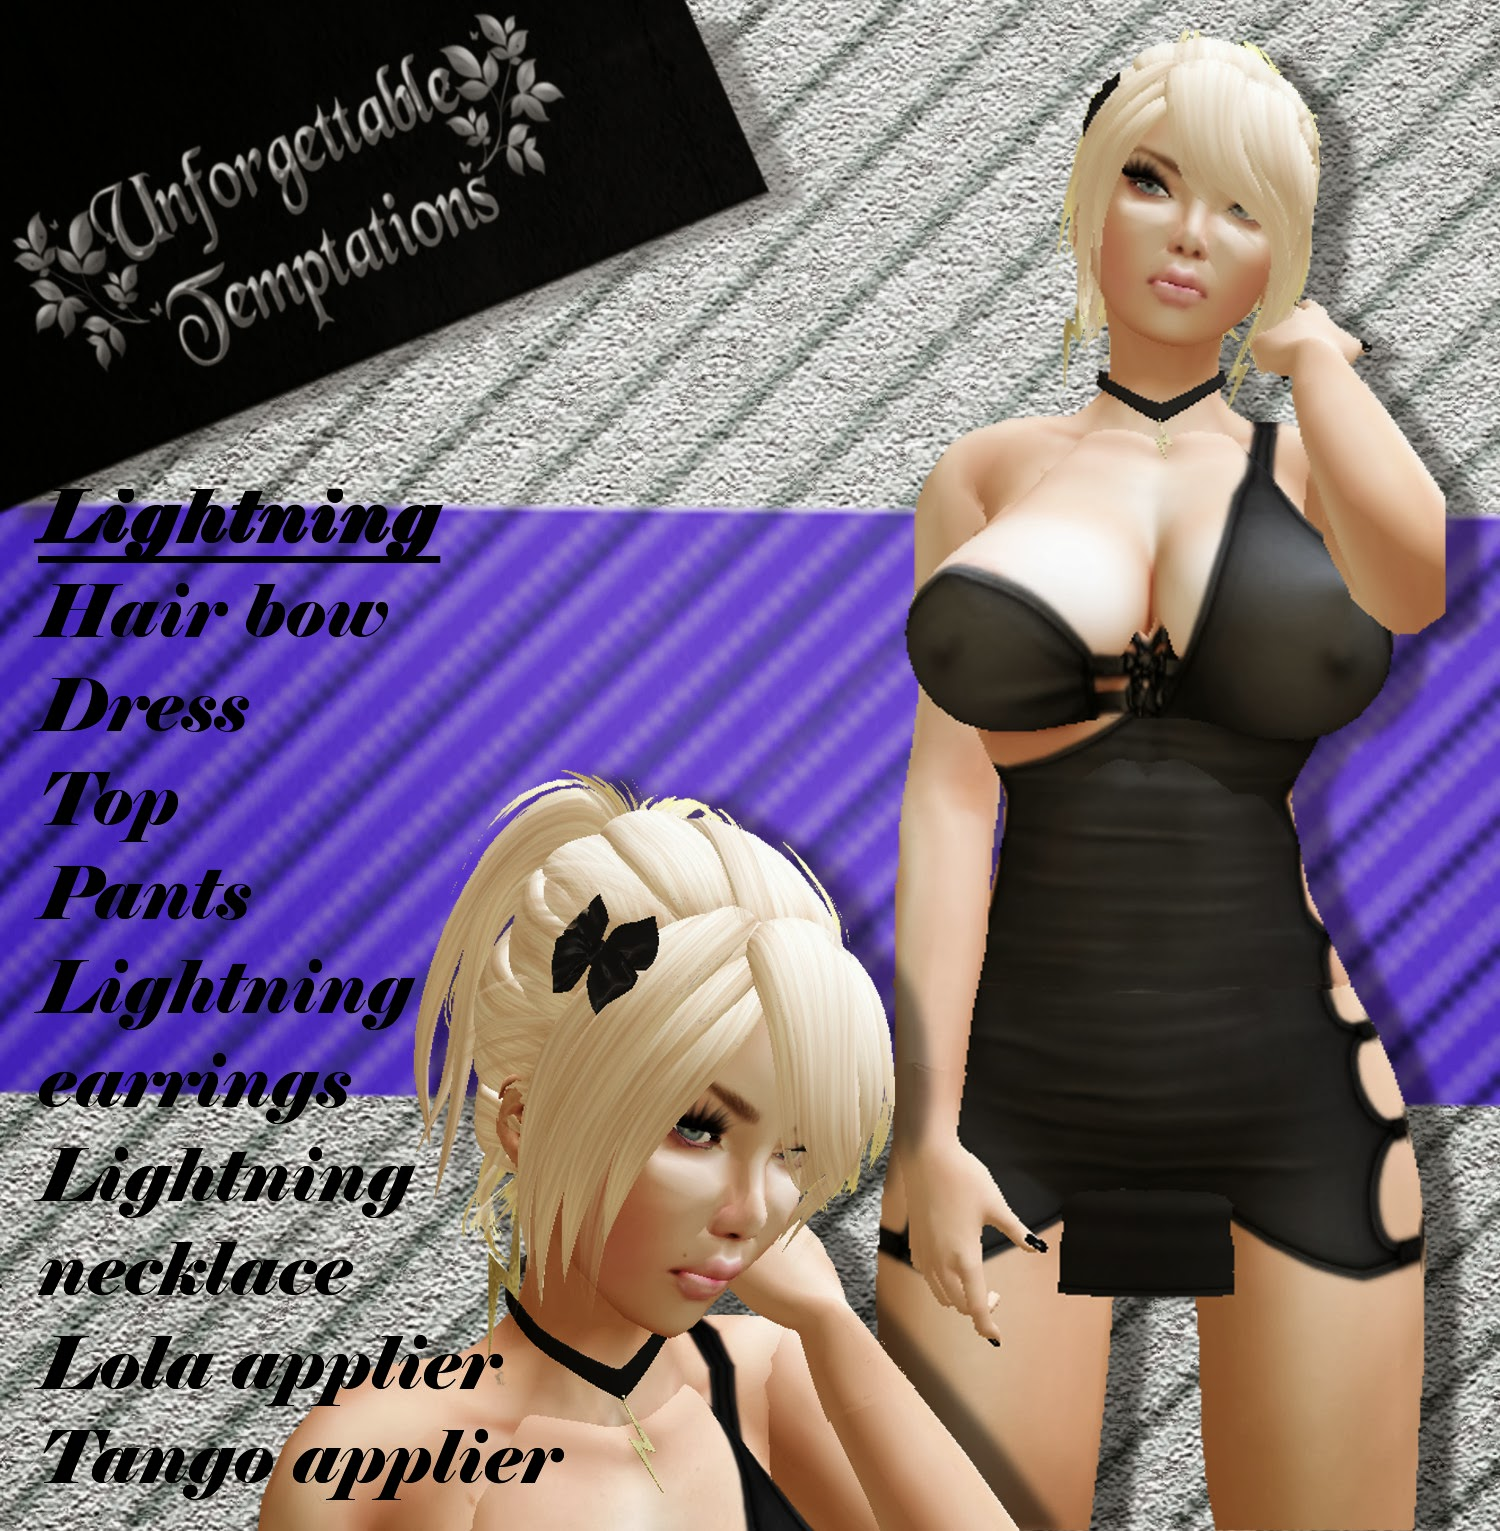 Lightning Outfit